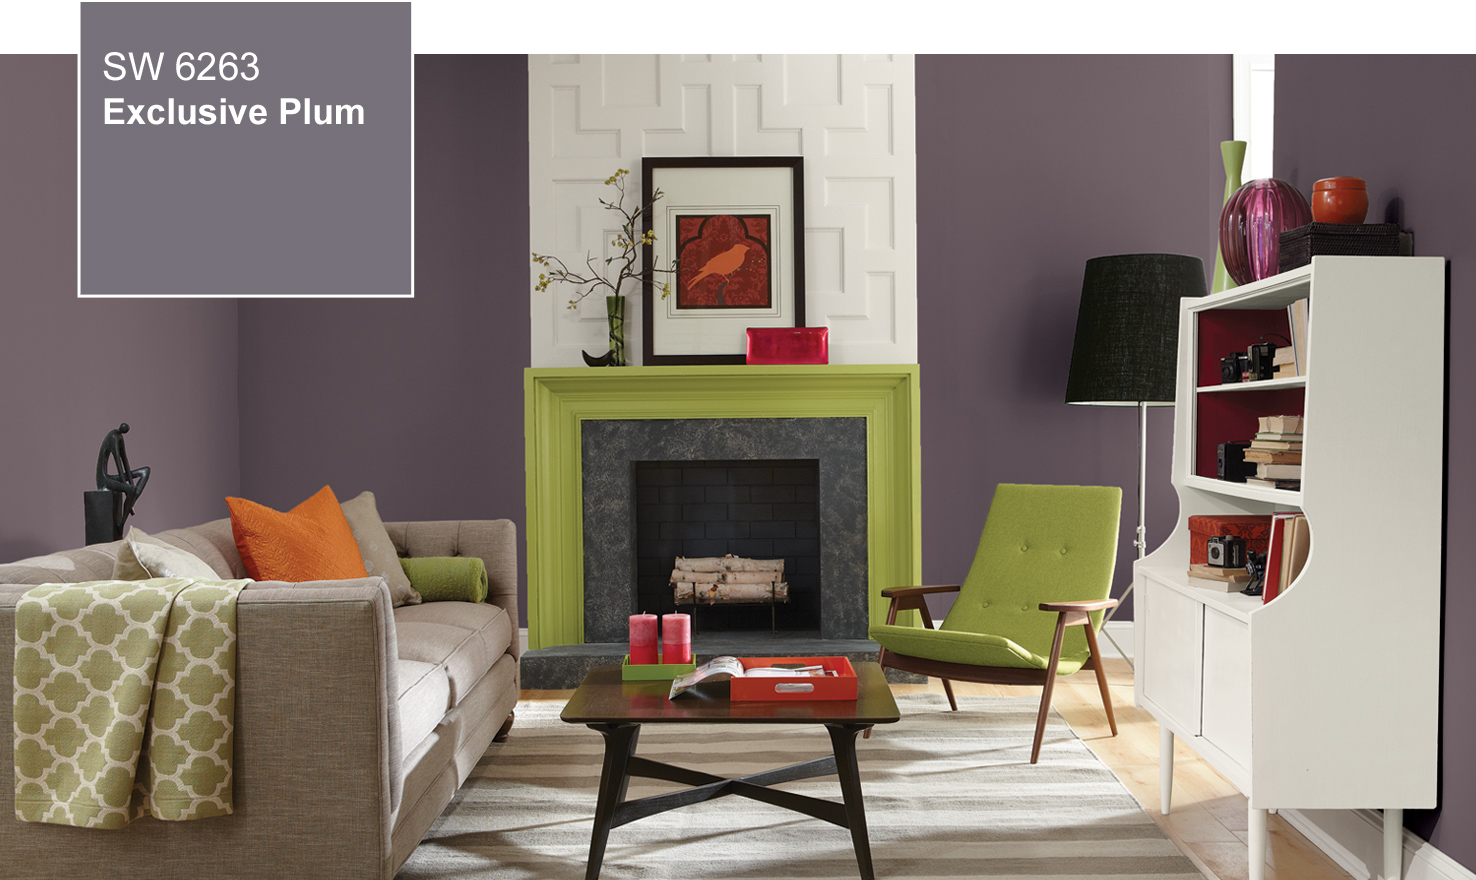 top sherwin williams paint colors for living room furniture set 2014 color of the year exclusive plum sw 6263 by carousel livingroom